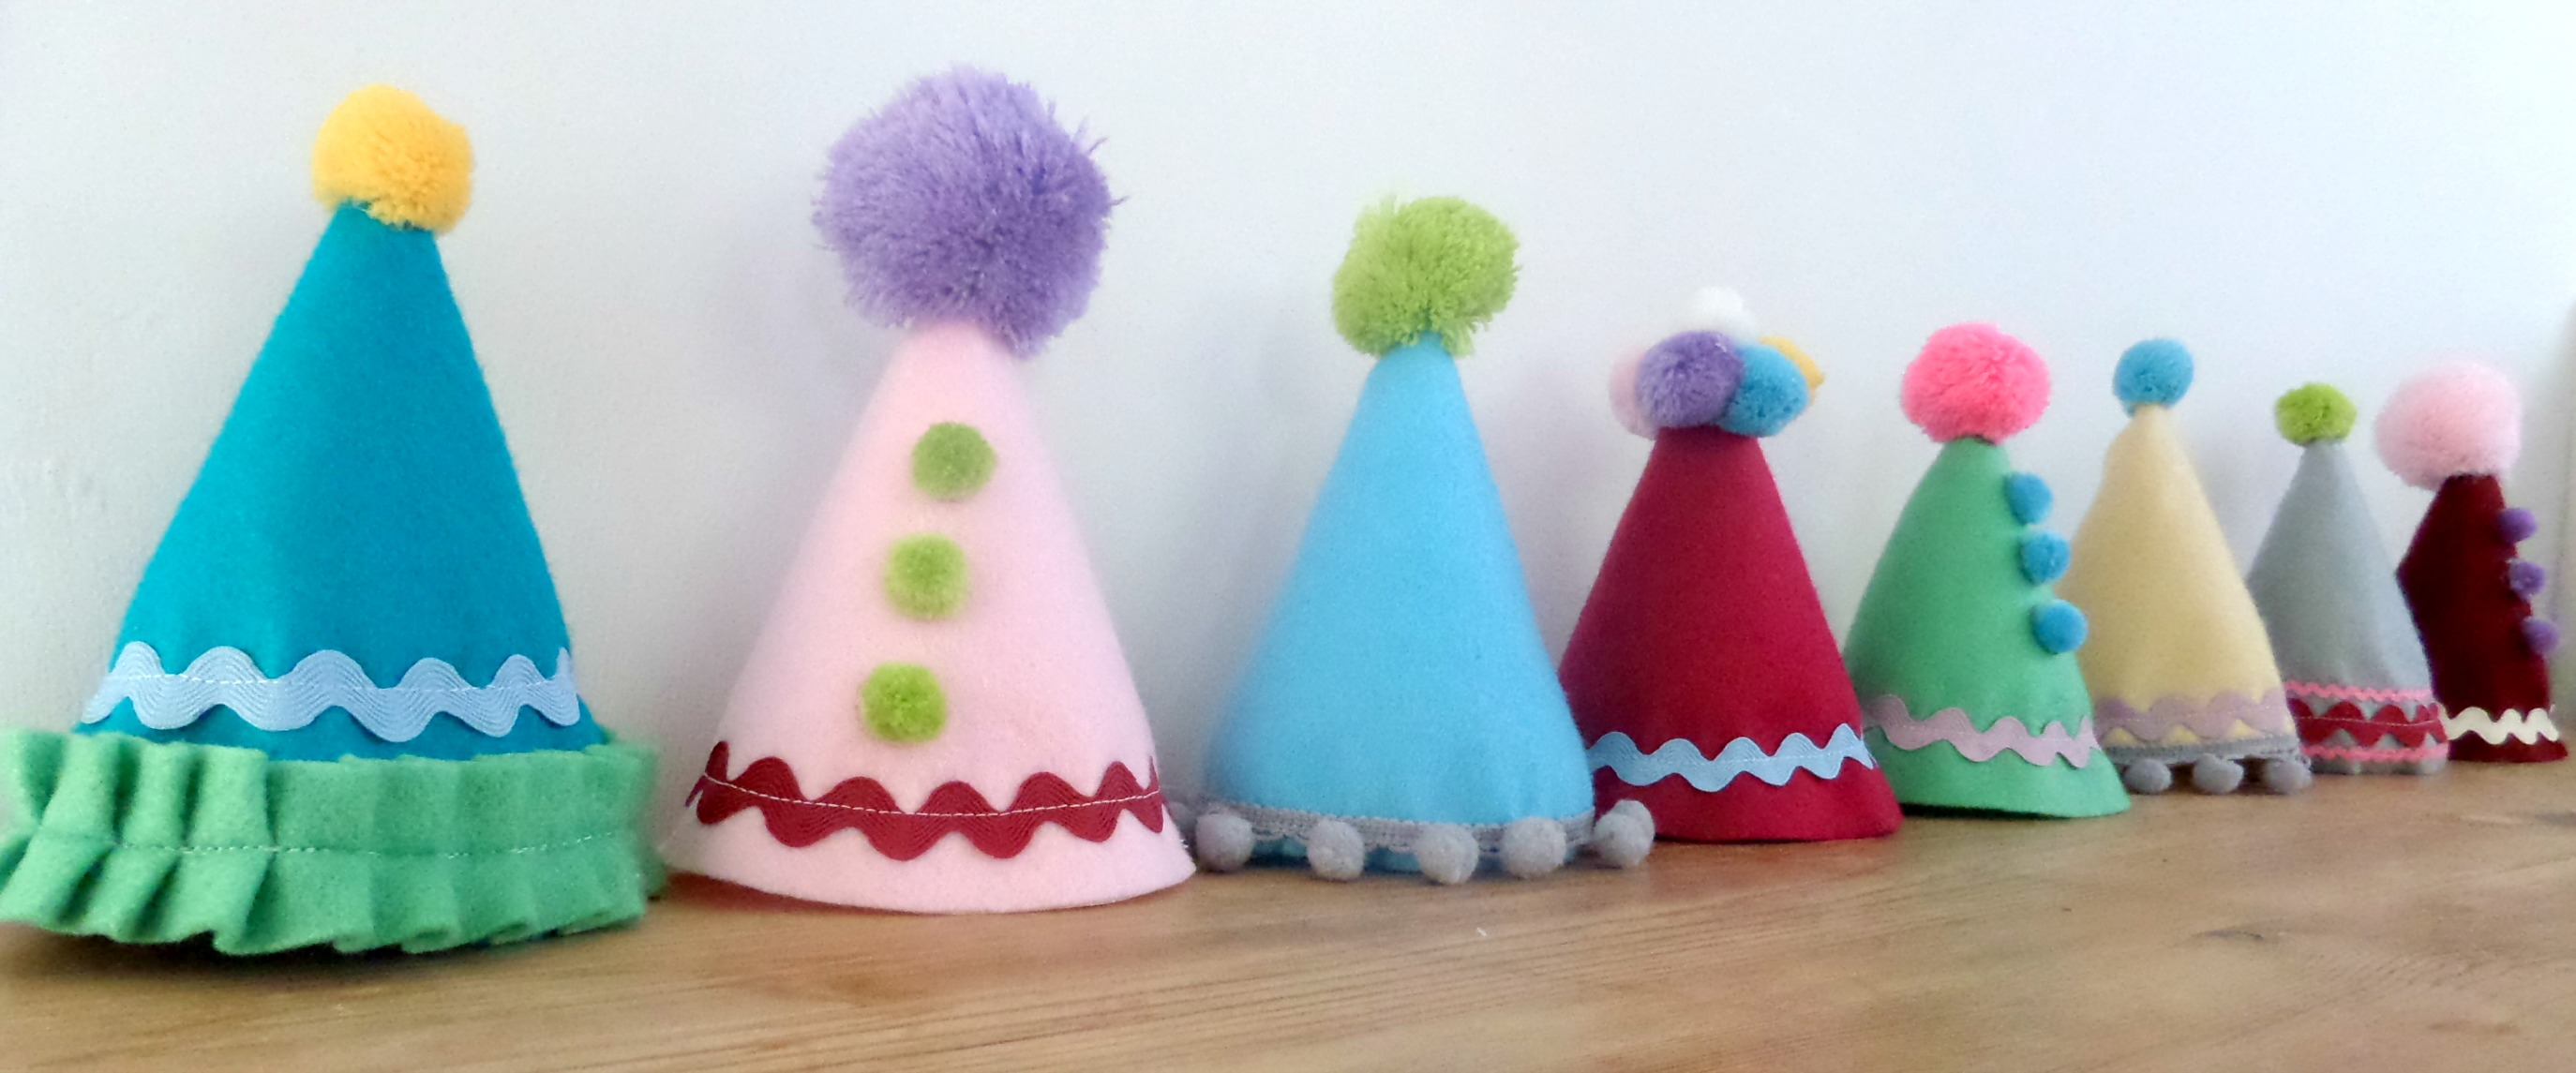 new haven years eve with Felt Party Hat Tutorial And Birthday Bunting on Ne likewise Your Best Shot 2015 Black And White additionally 4th July Panama City Beach as well 440690 moreover Mermaid.